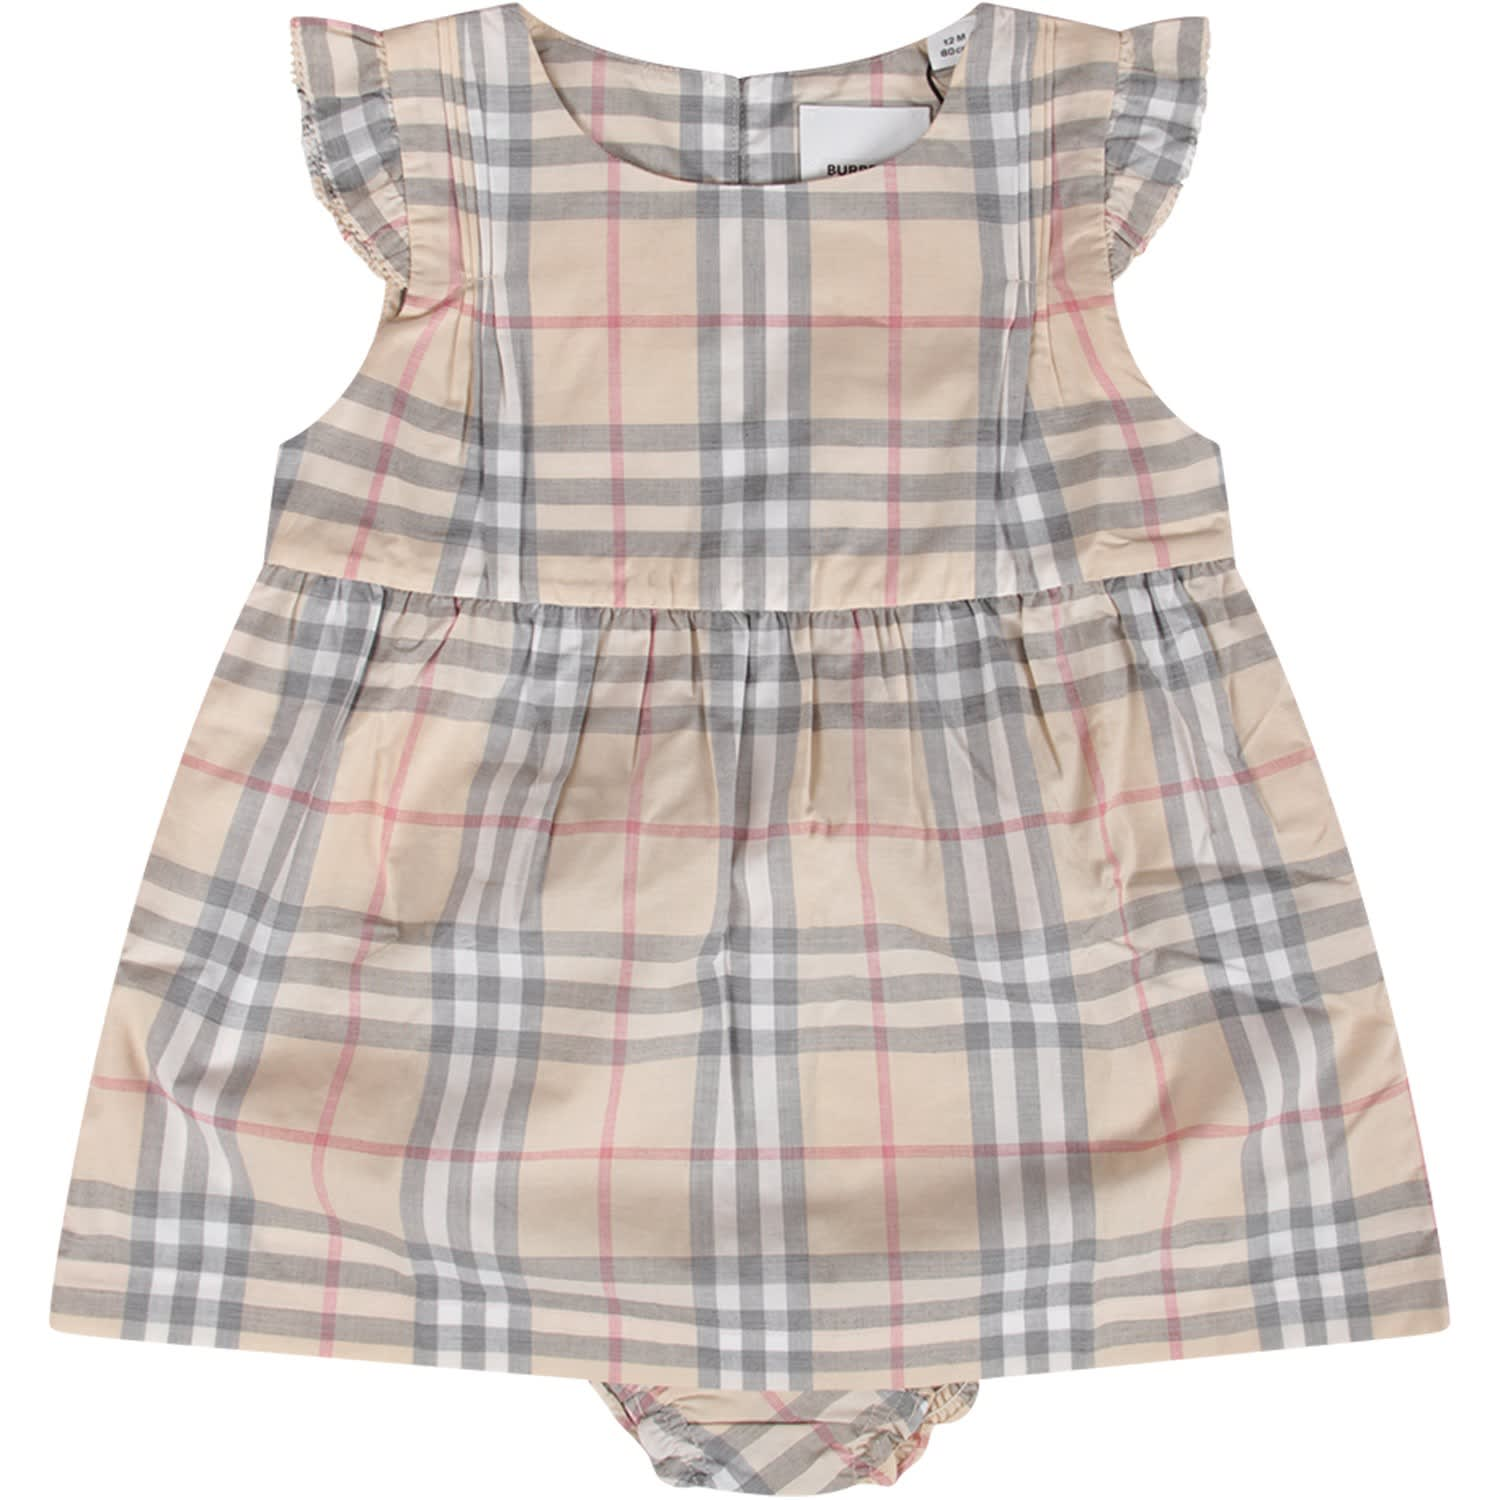 Buy Burberry Checked Baby Girl Dress online, shop Burberry with free shipping